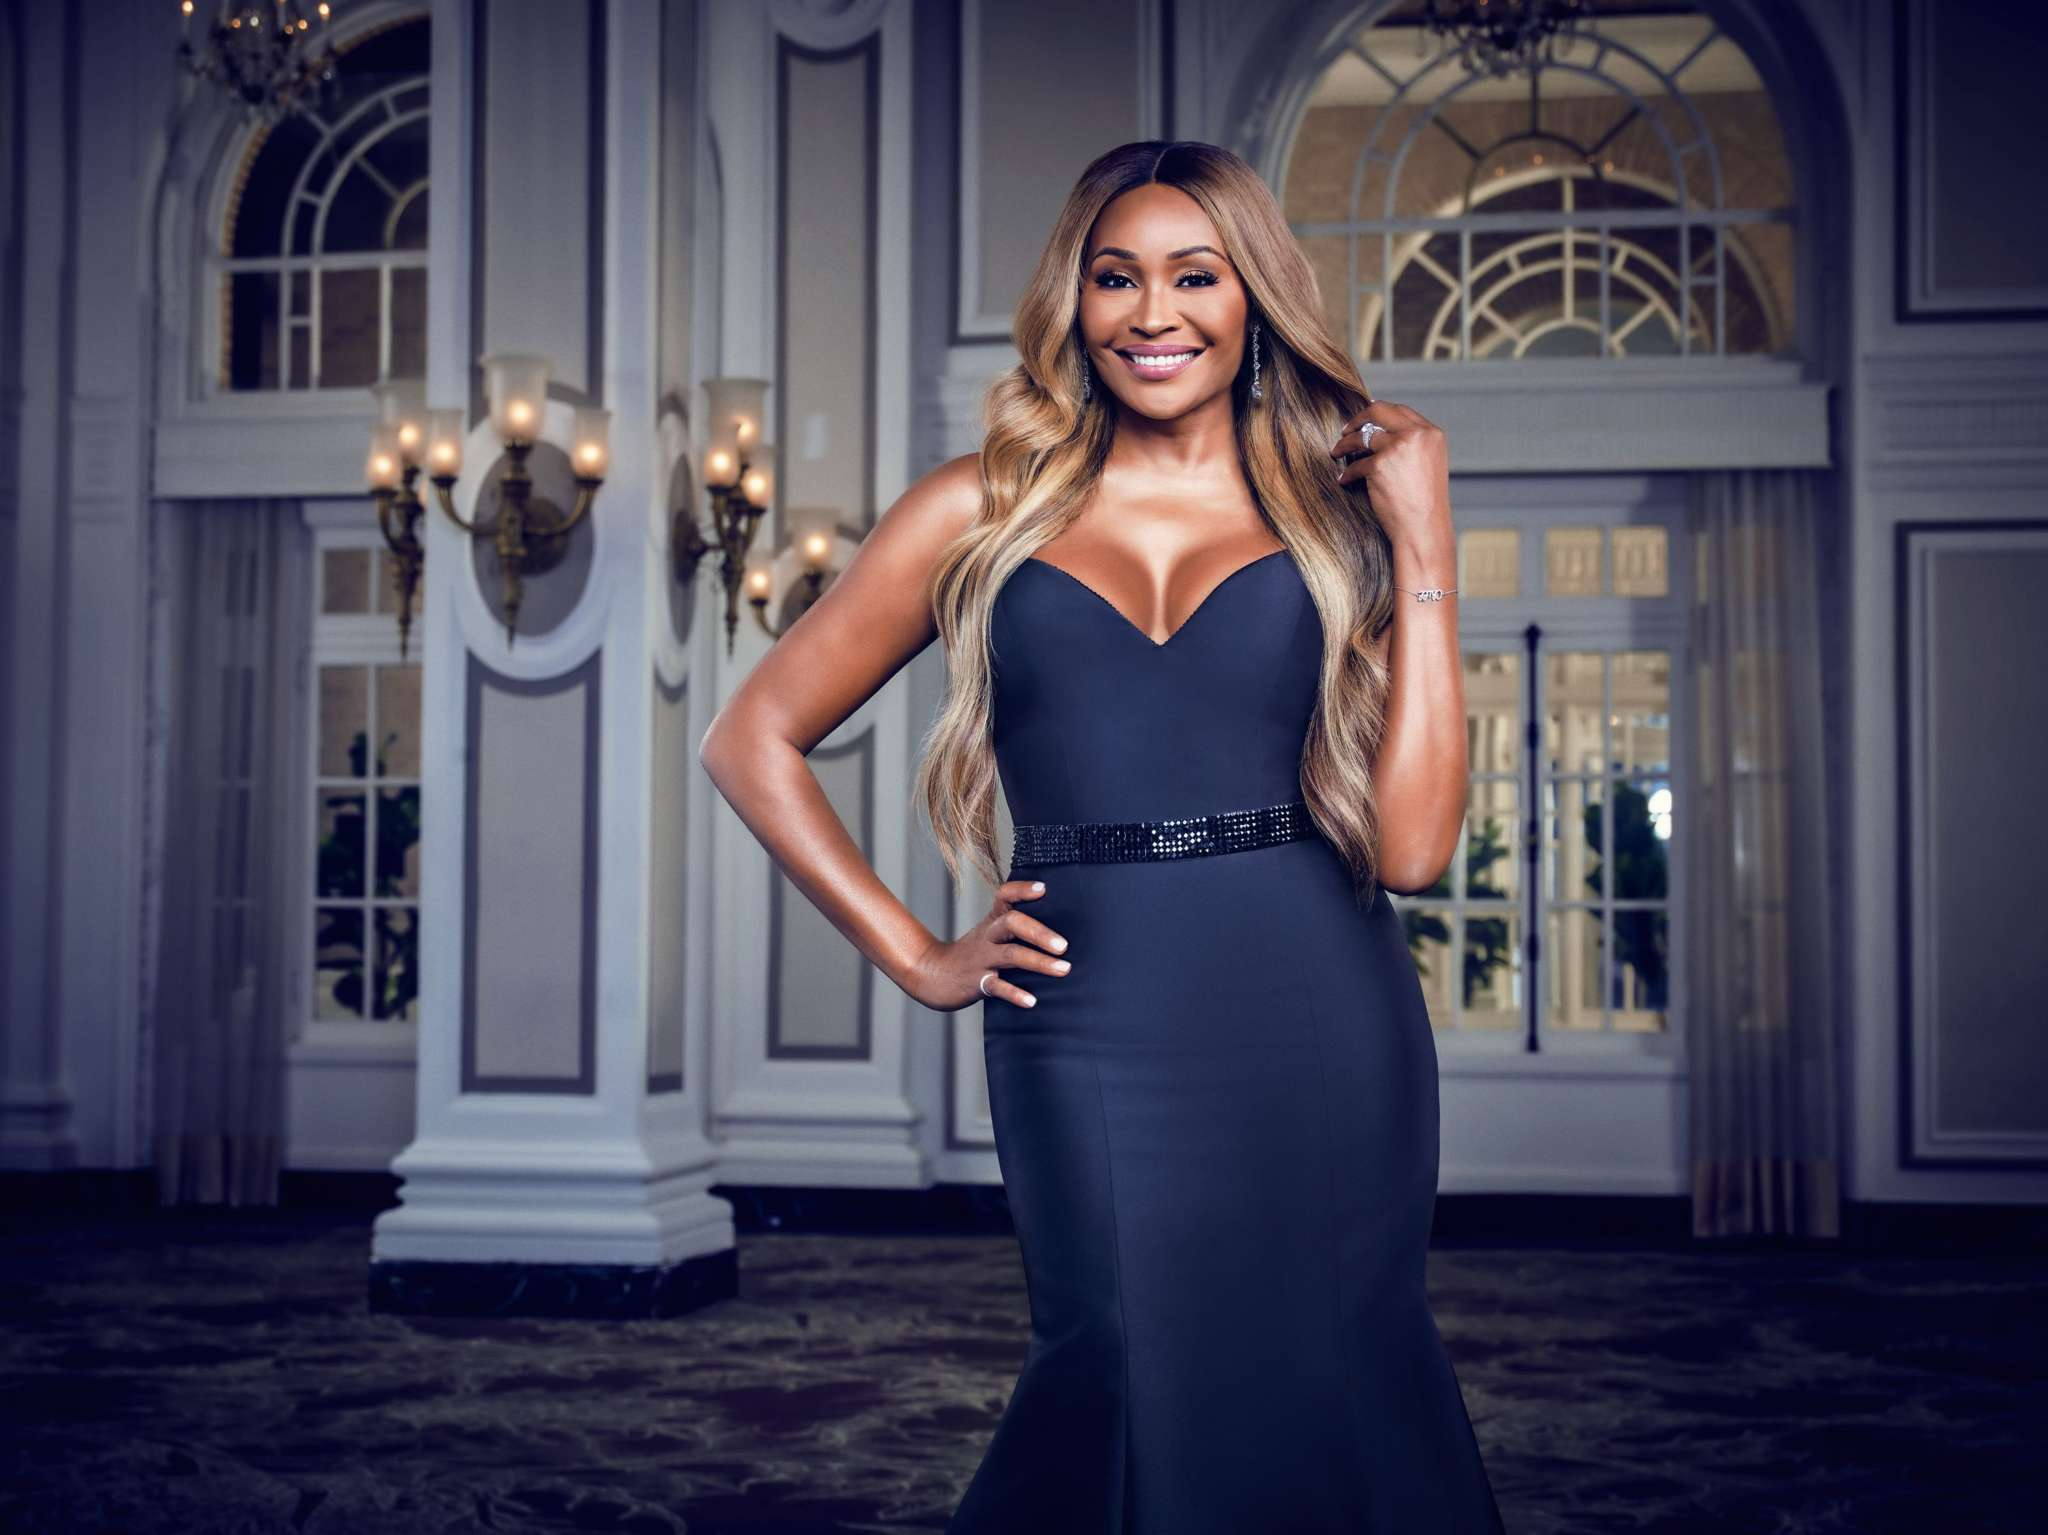 Cynthia Bailey Shares Another Modeling Throwback Photo